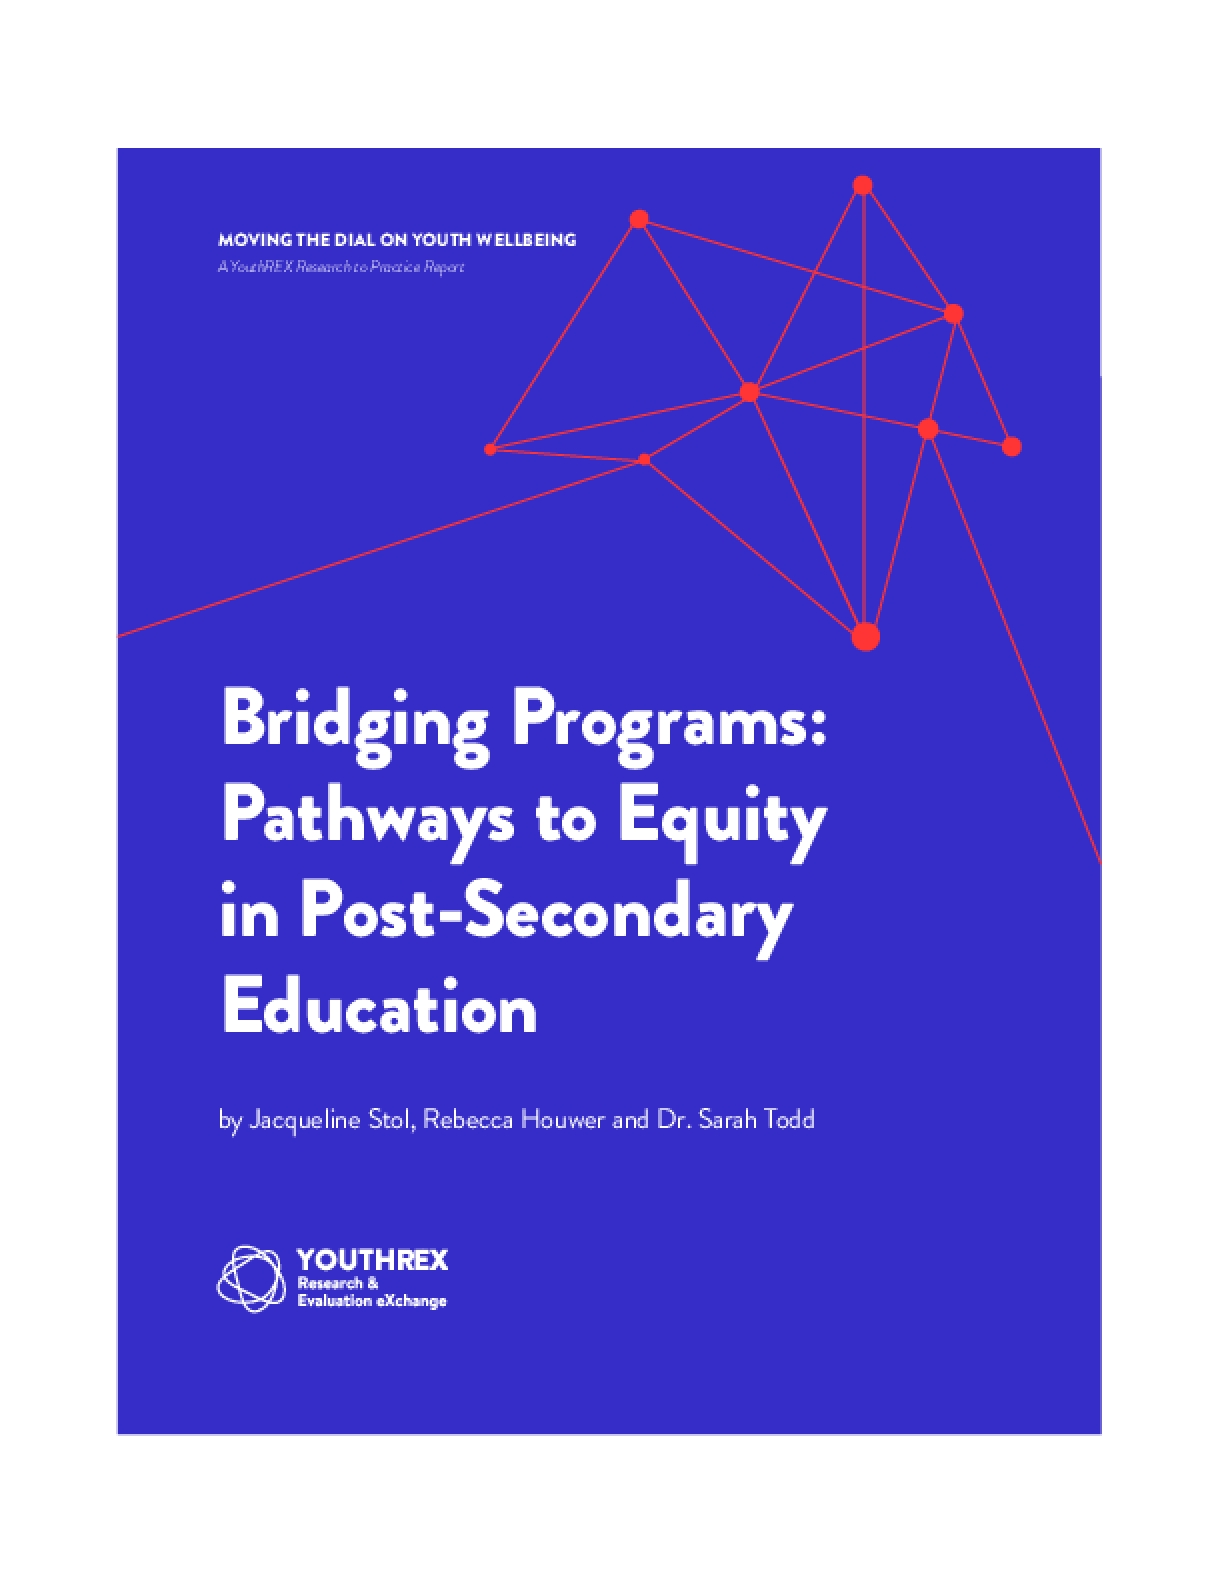 Bridging Programs: Pathways To Equity In Post-Secondary Education